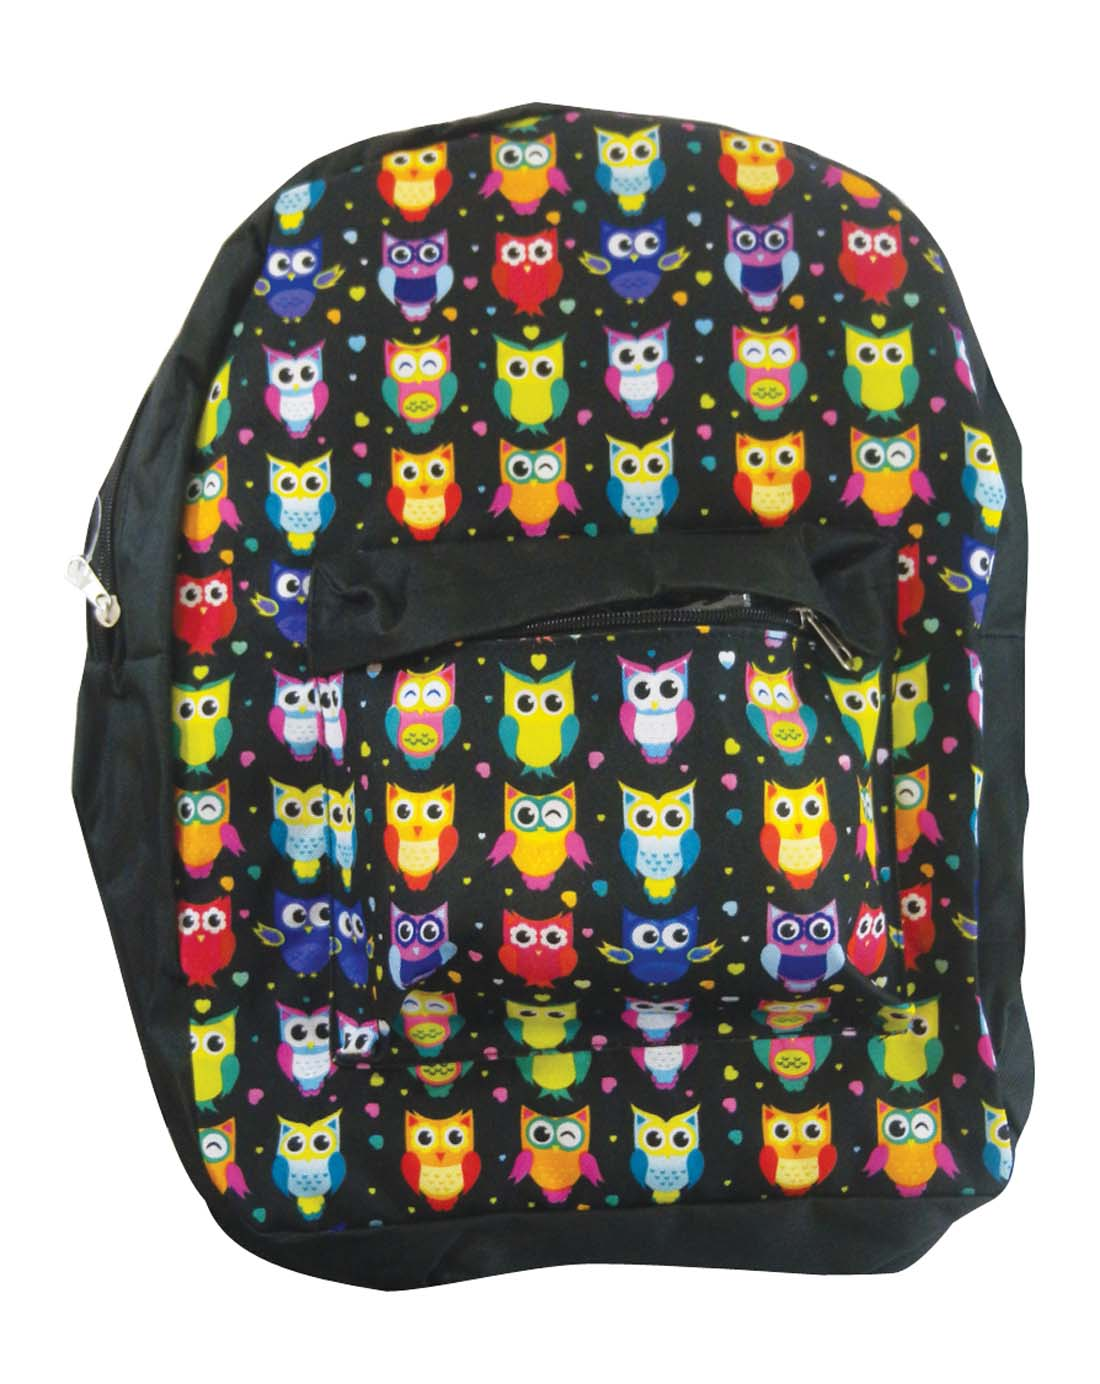 View BACK PACK 16X12X6 INCHES OWLS